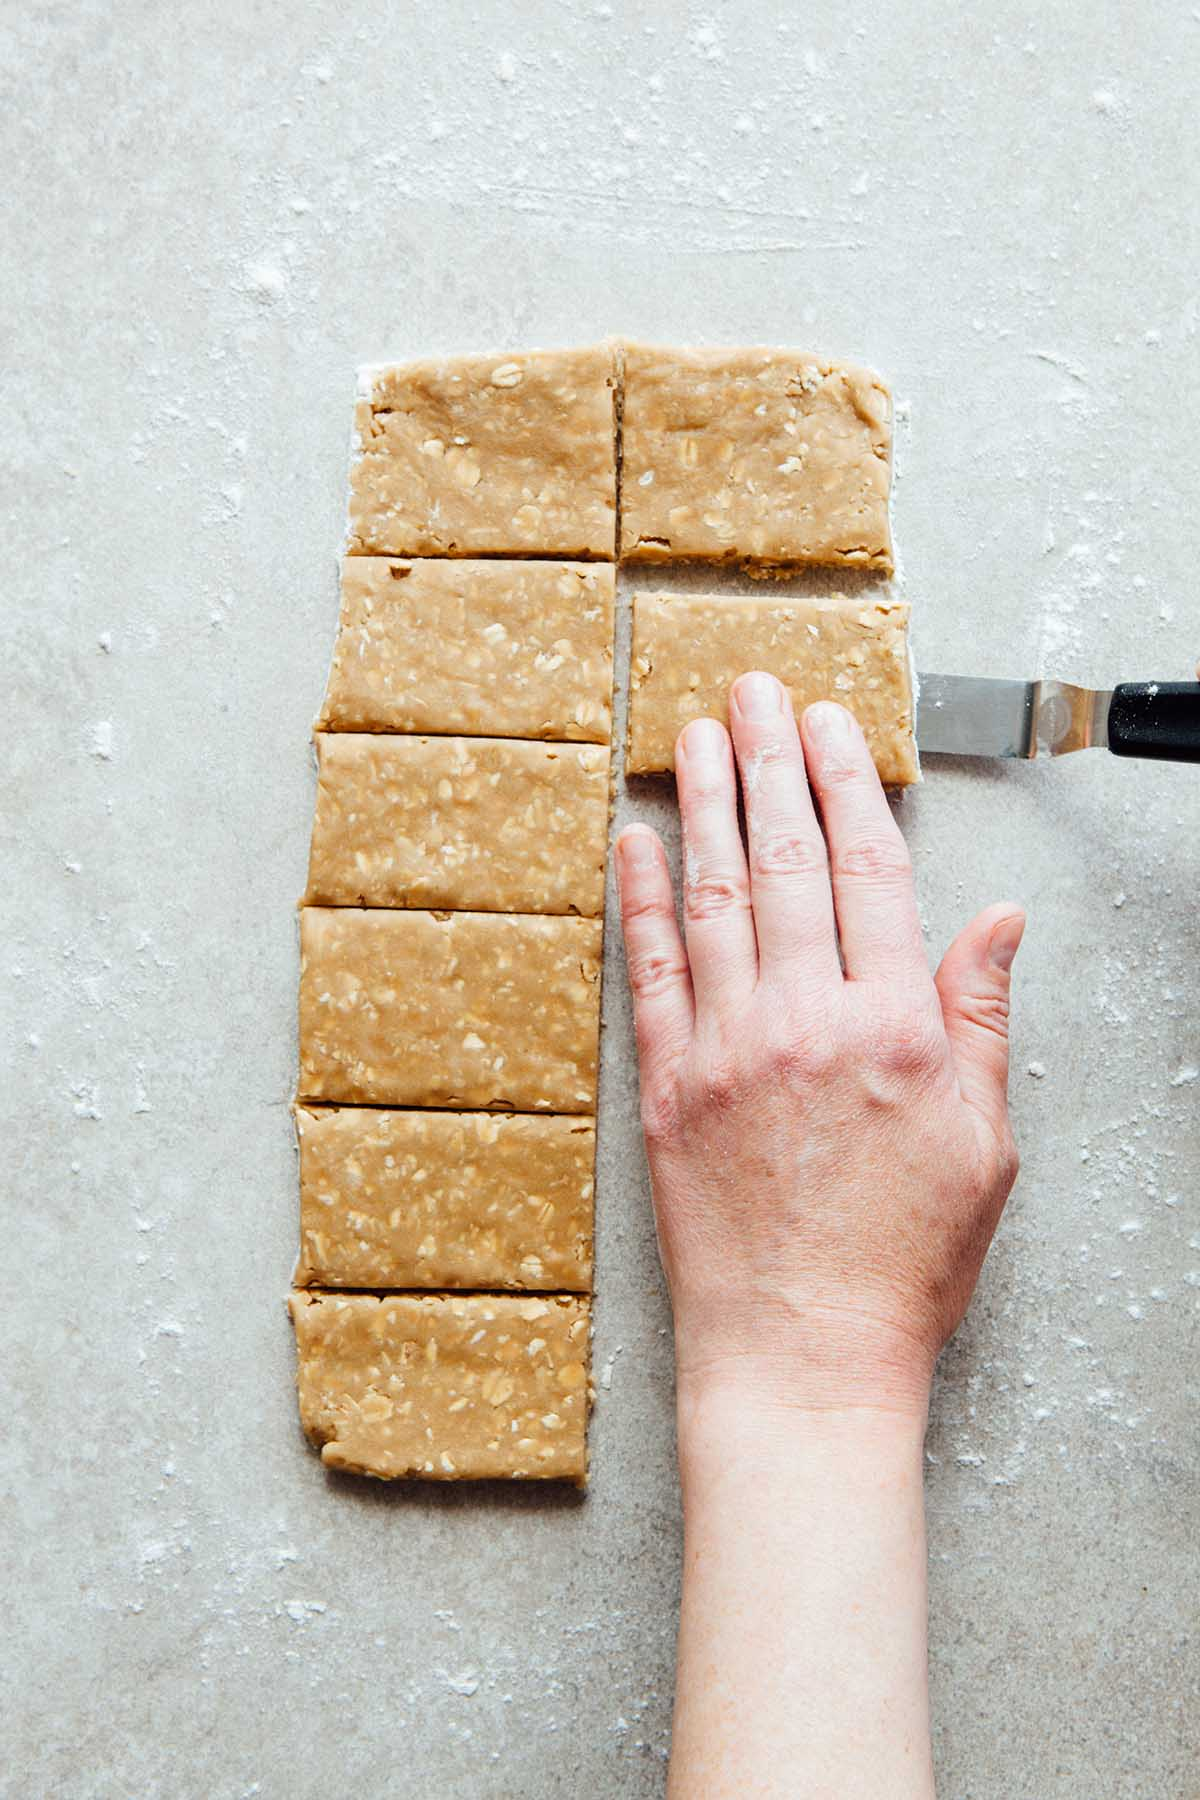 A hand lifting an oatcake with an offset spatula.